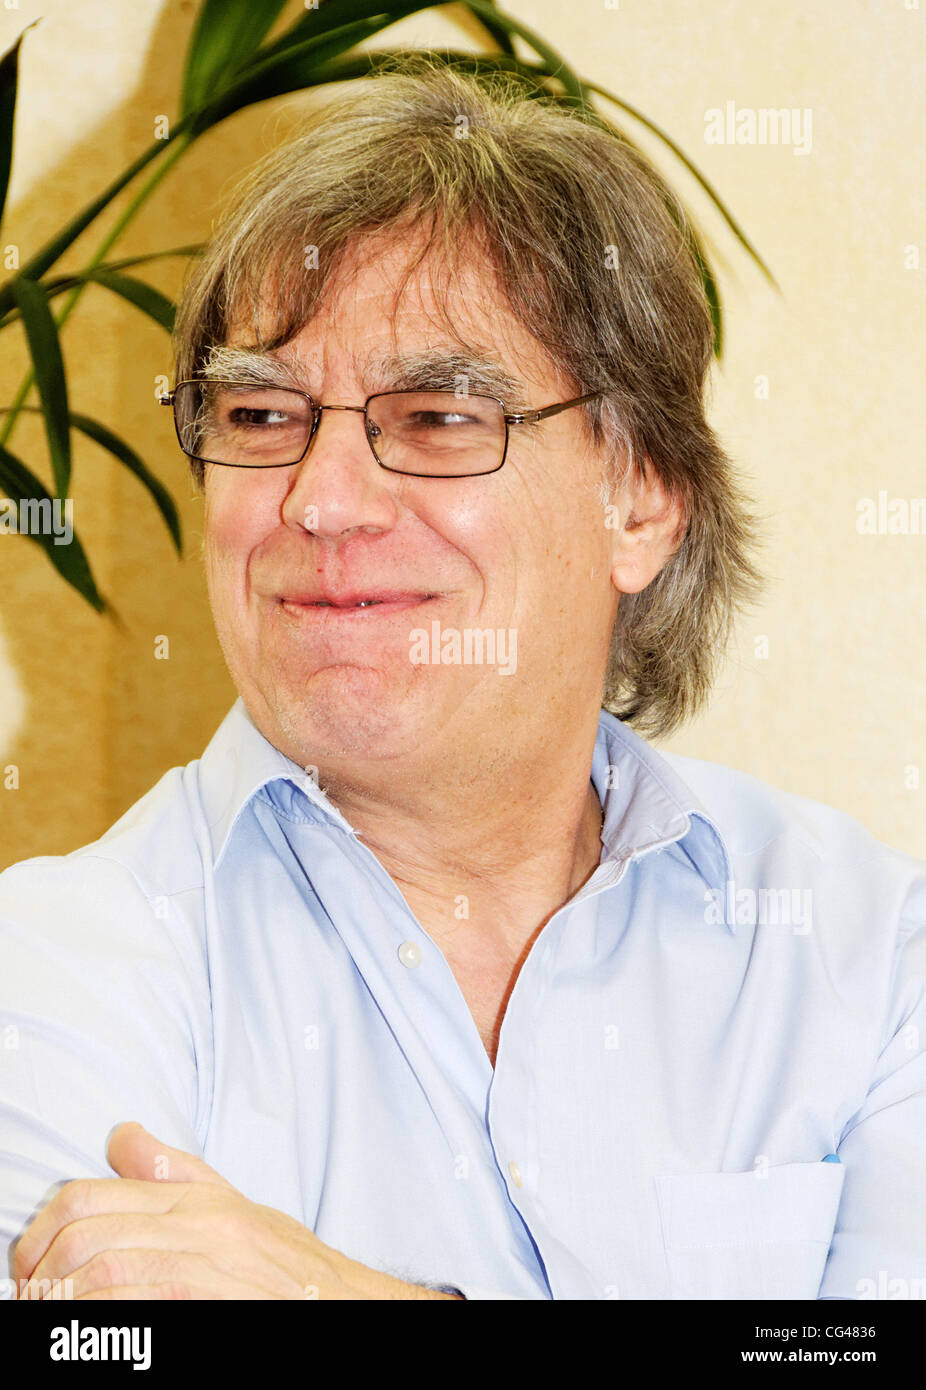 Keyboard player and writer Graham Preskett at Marina Laslo's 'Night & Day' album launch held at Hotel Majestic - press conference Cannes, France - 25.01.11 Stock Photo